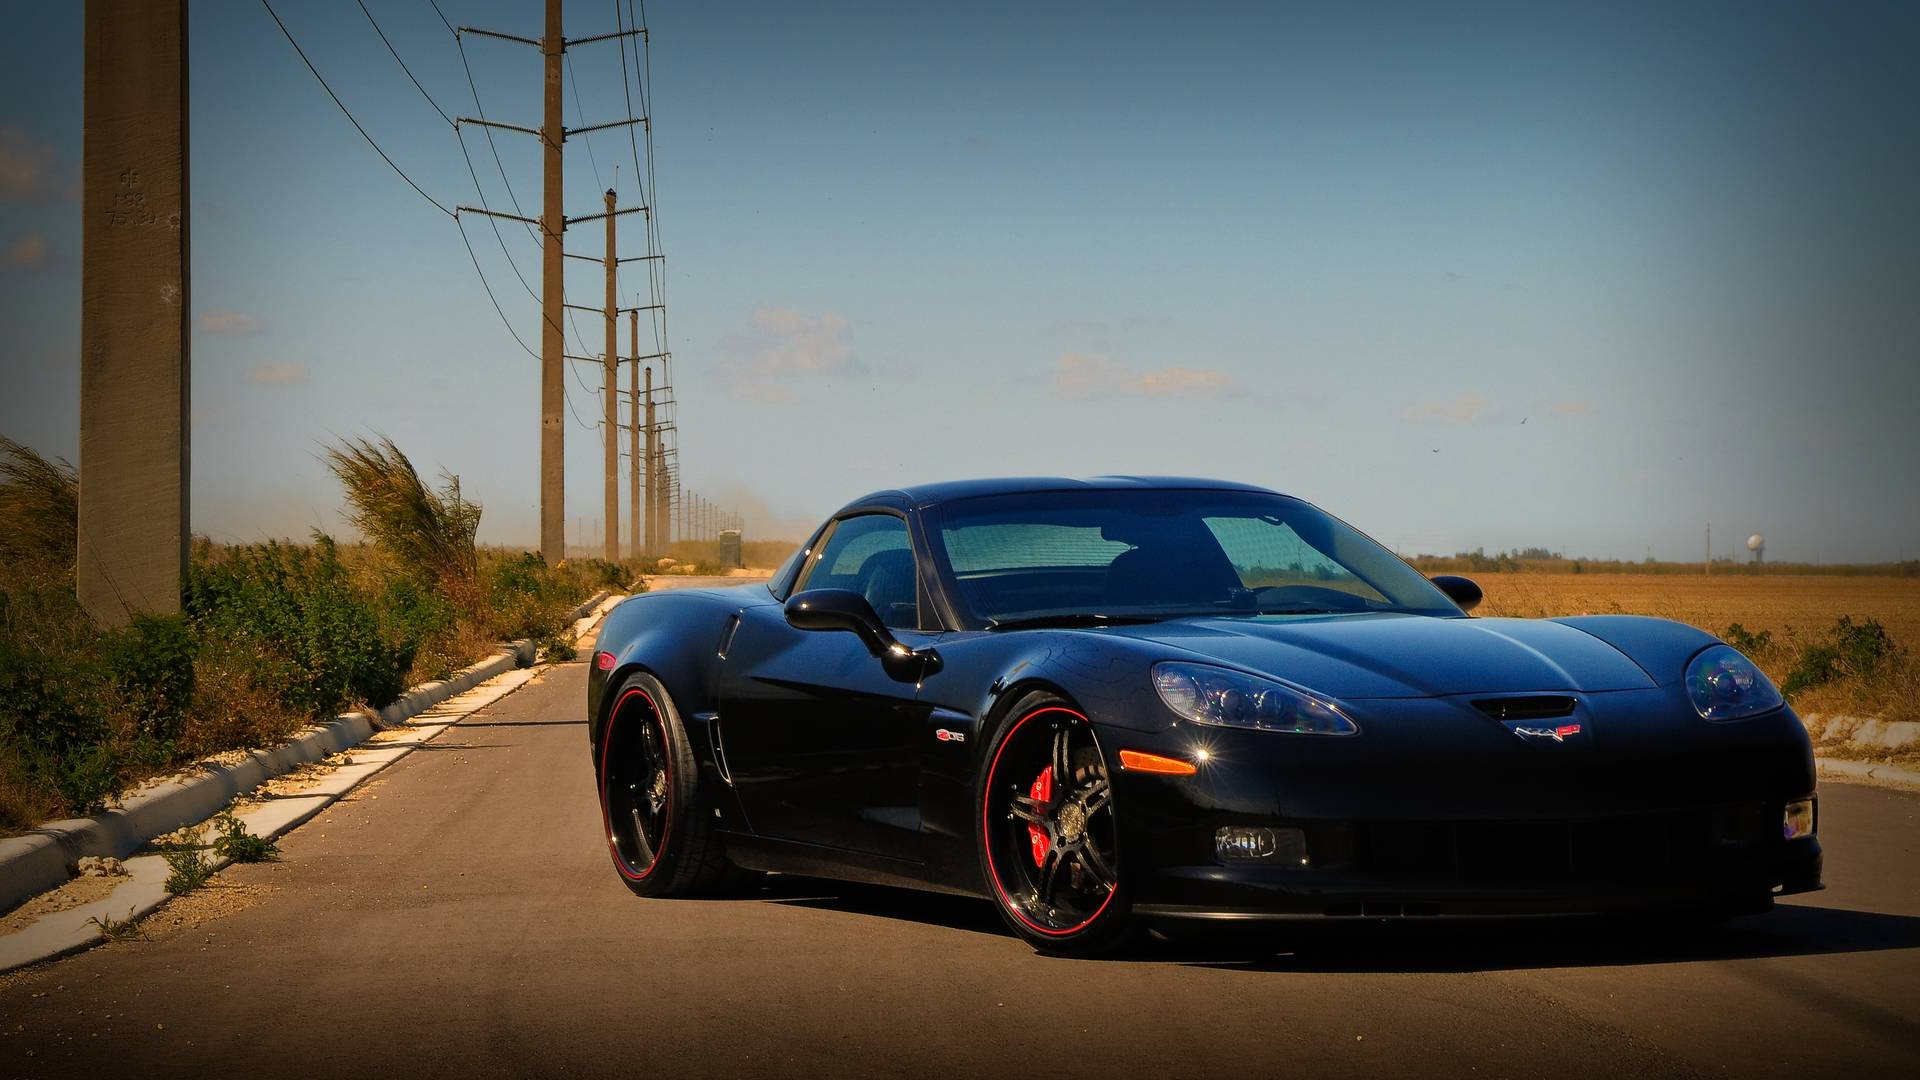 corvette wallpaper hd - photo #33